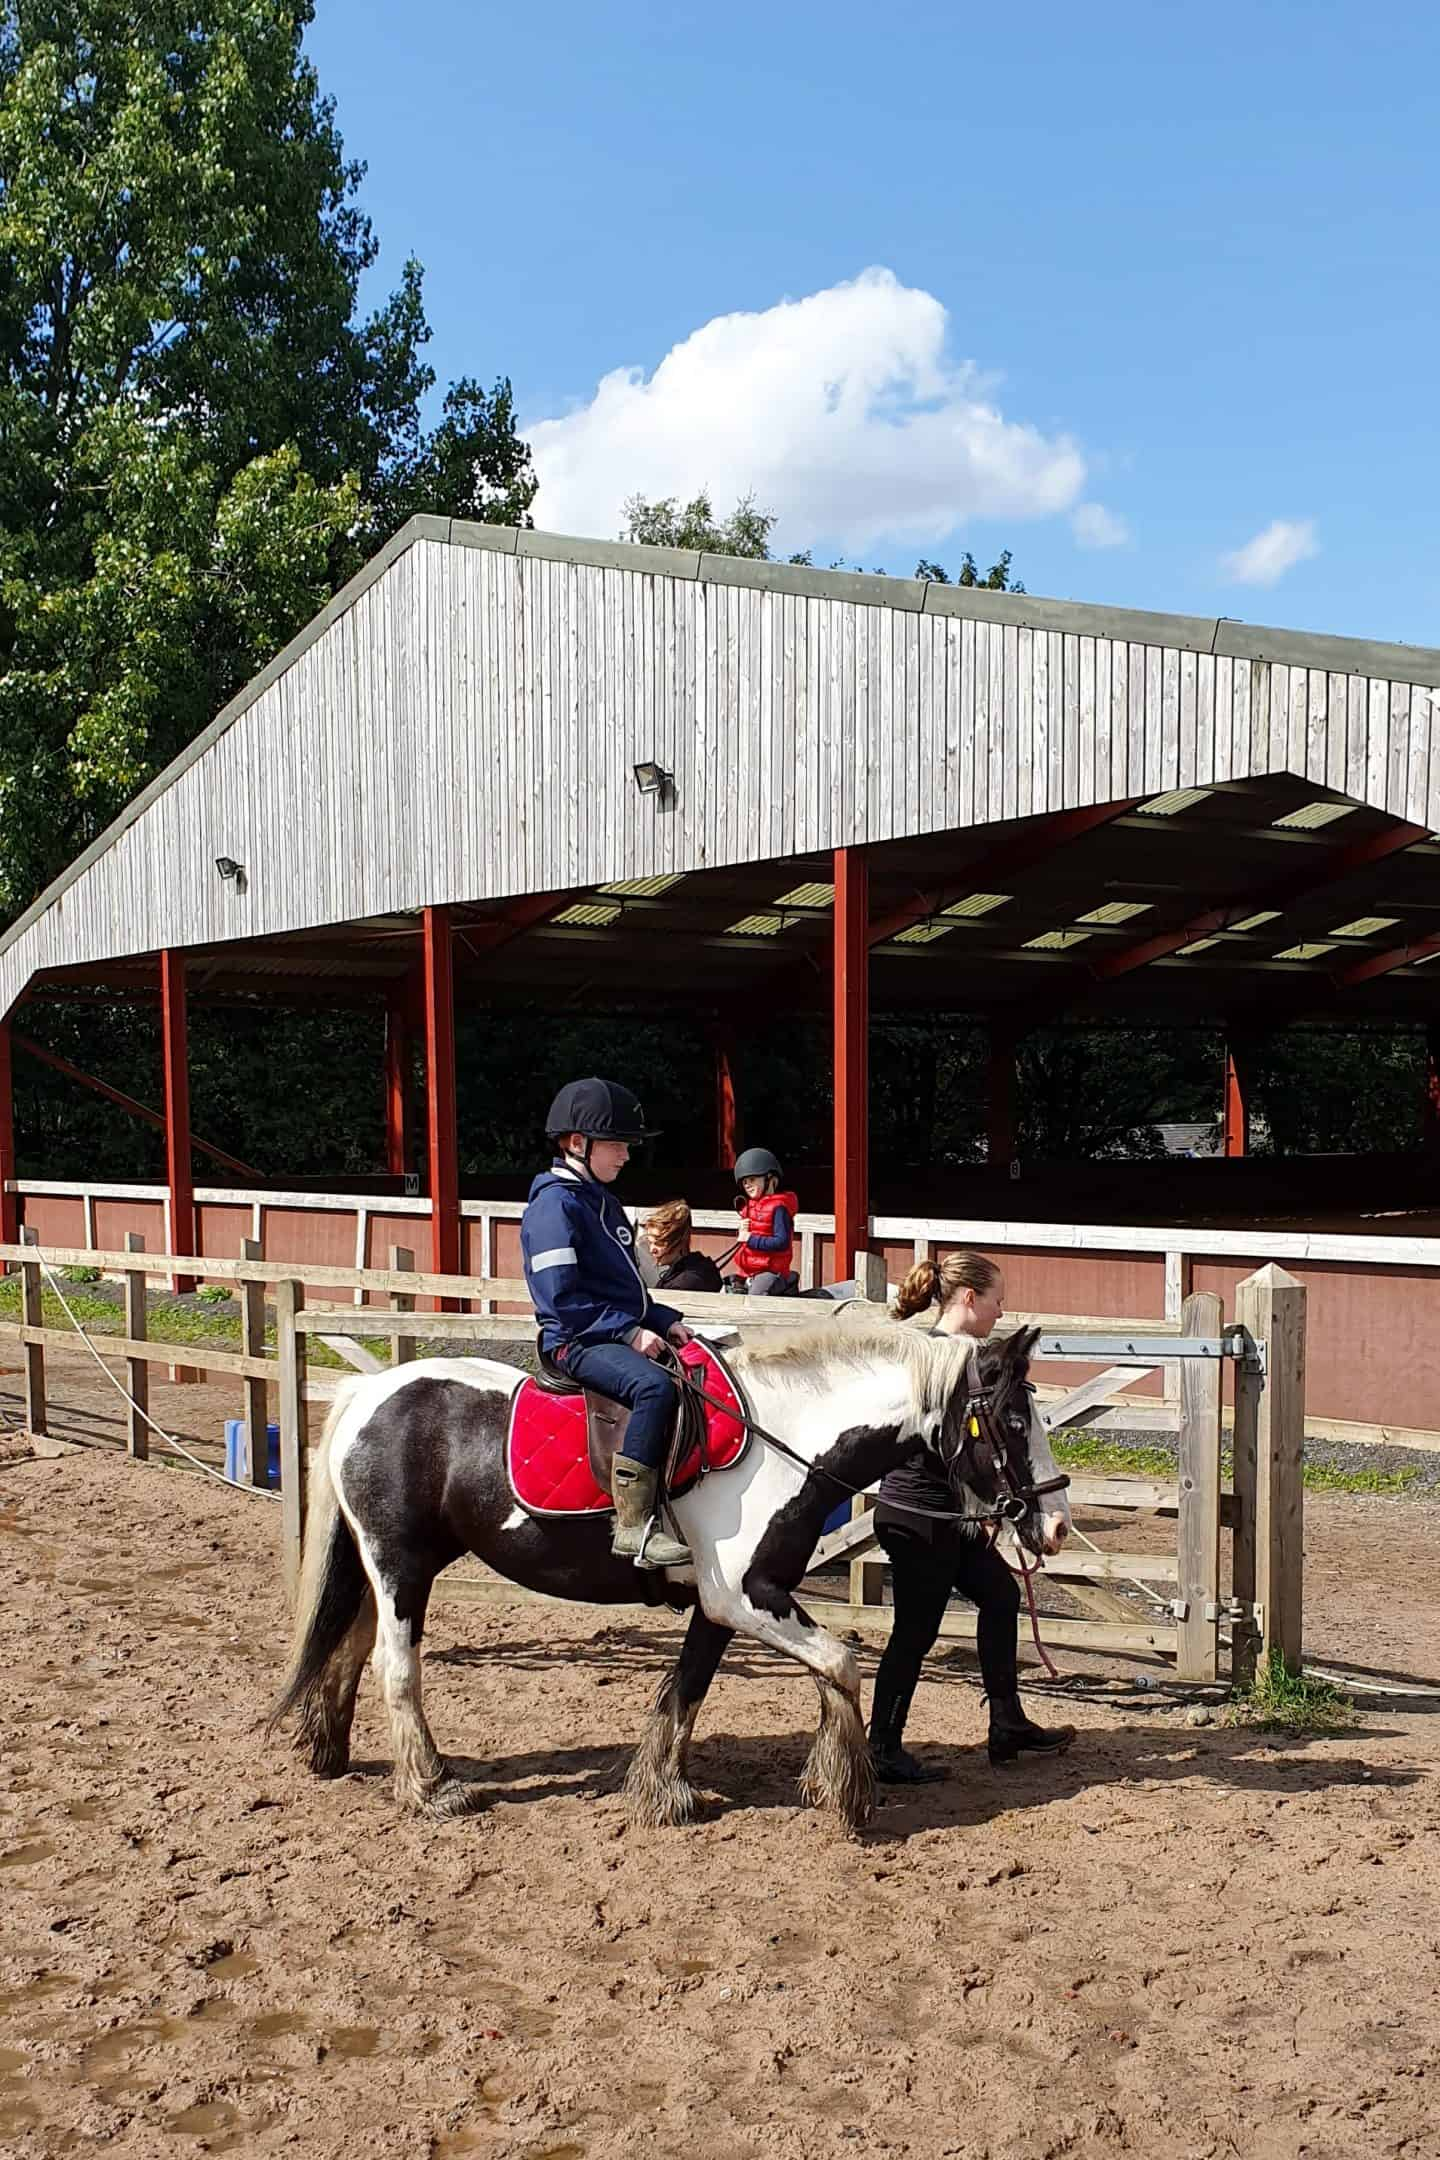 Horse riding lessons at Daisy Nook stables